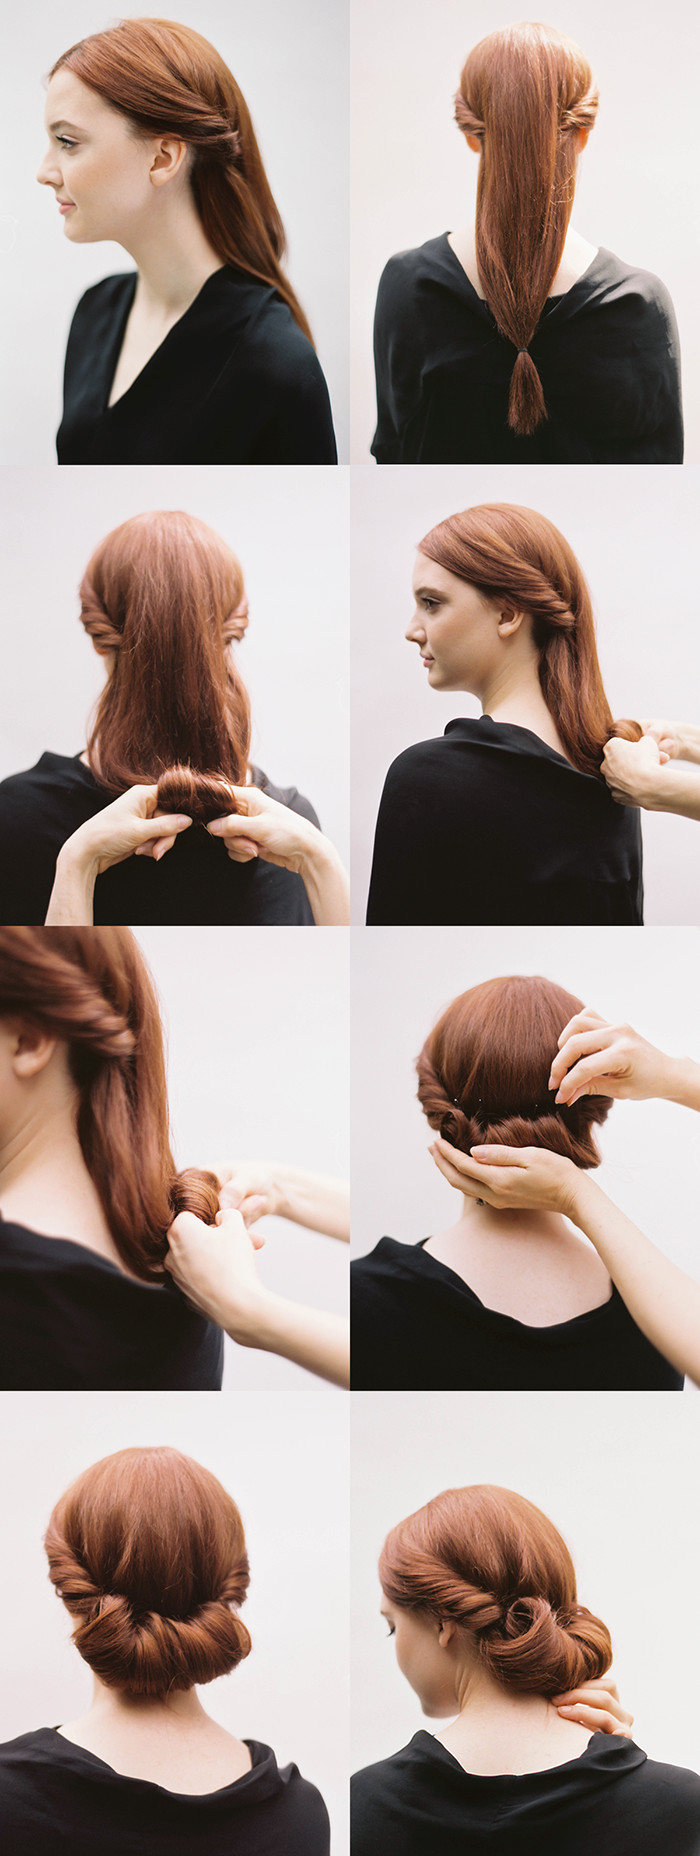 Best ideas about DIY Wedding Hair . Save or Pin DIY Rolled Chignon Hair Tutorial DIY Now.